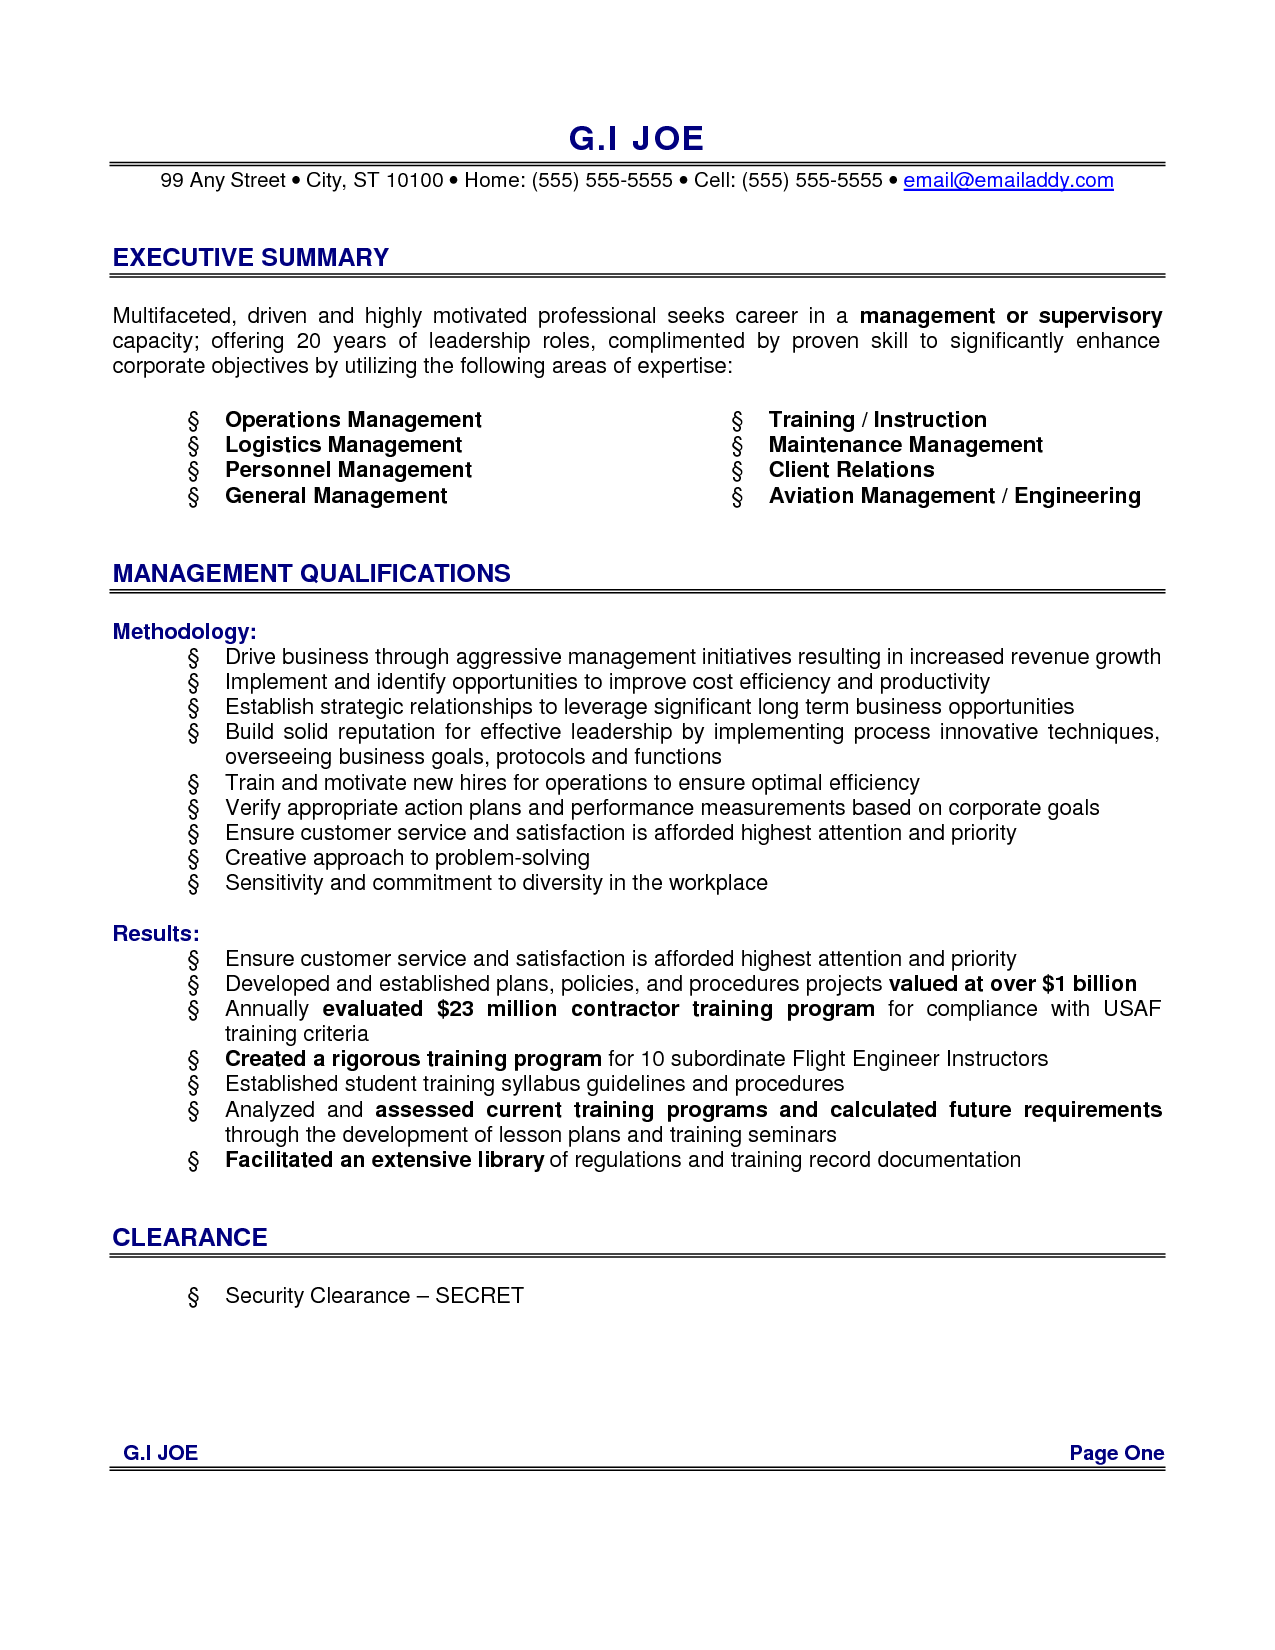 Executive Summary For Resume Examples Resume Sample